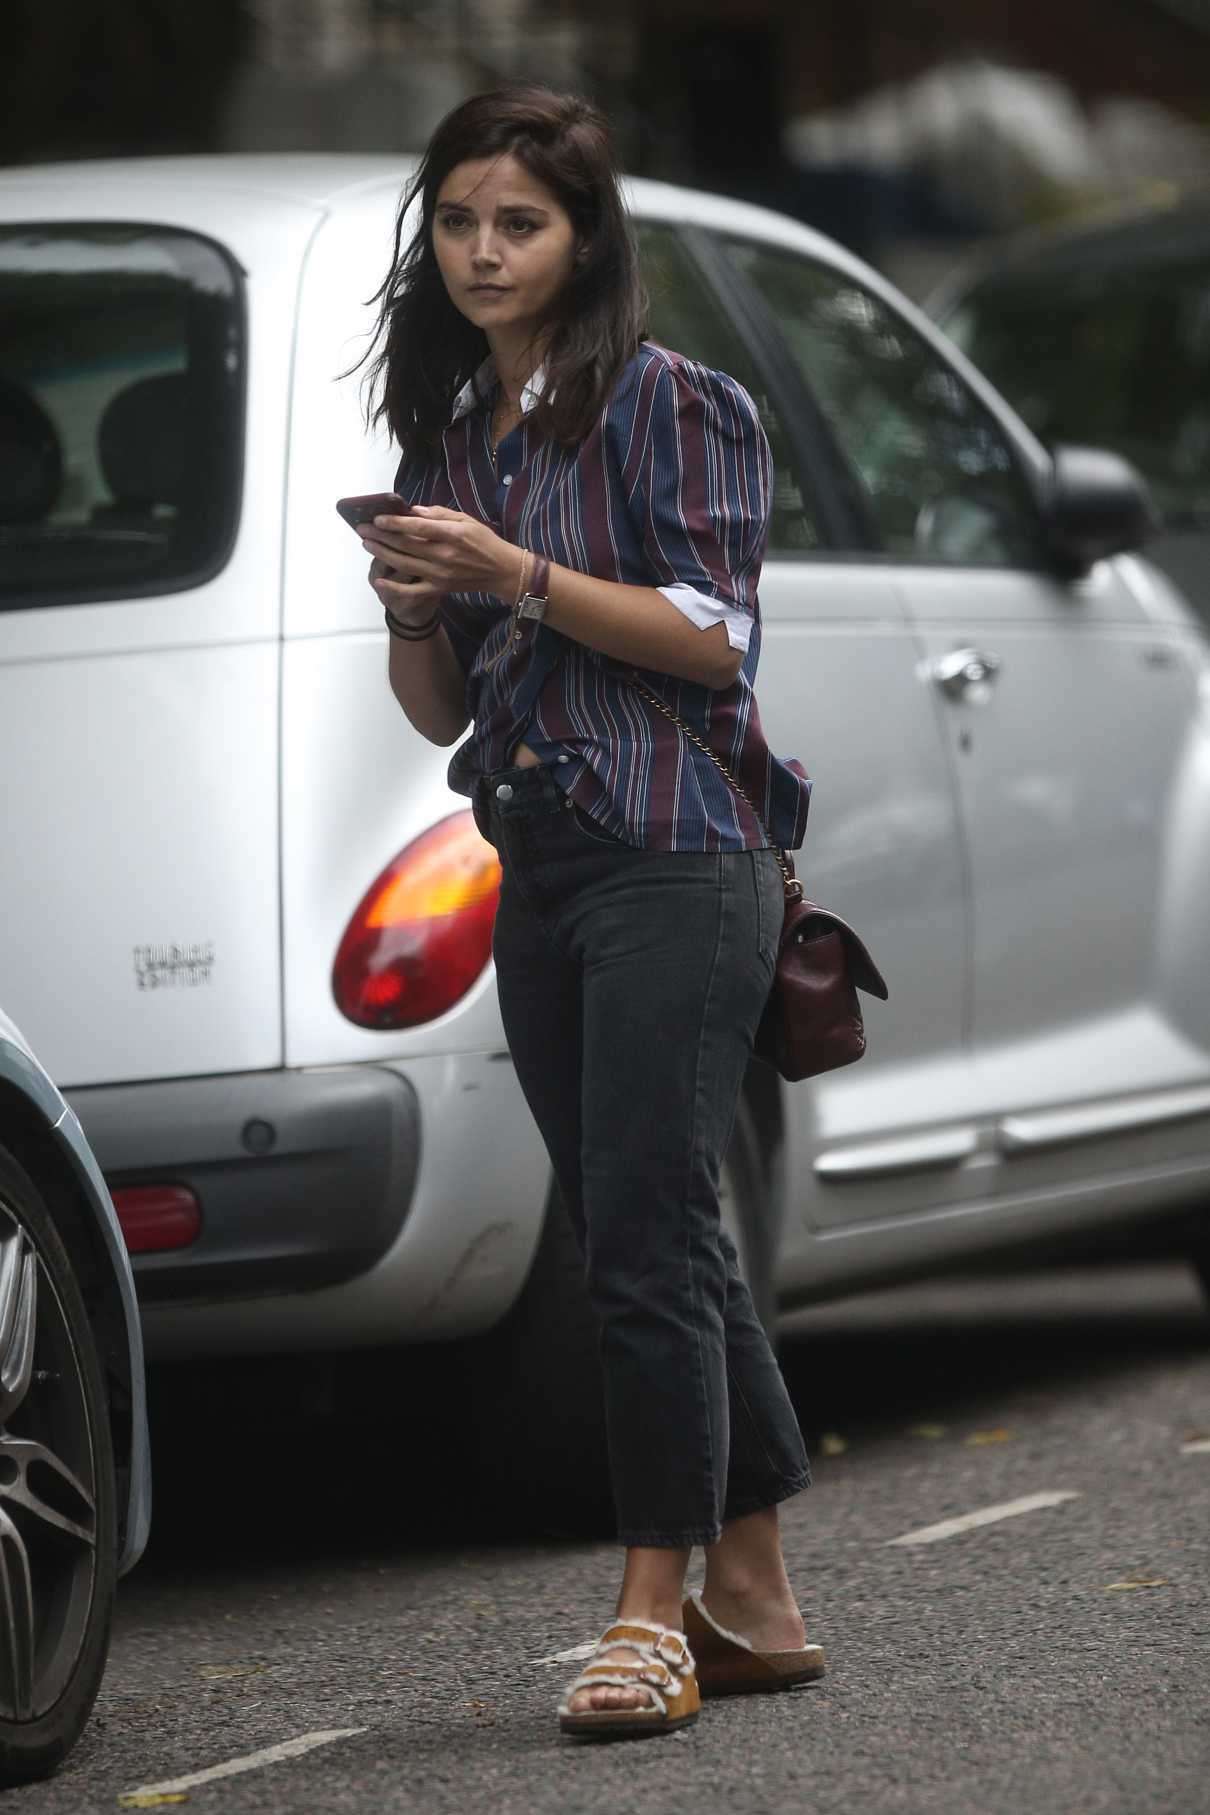 Jenna Coleman in a Striped Shirt